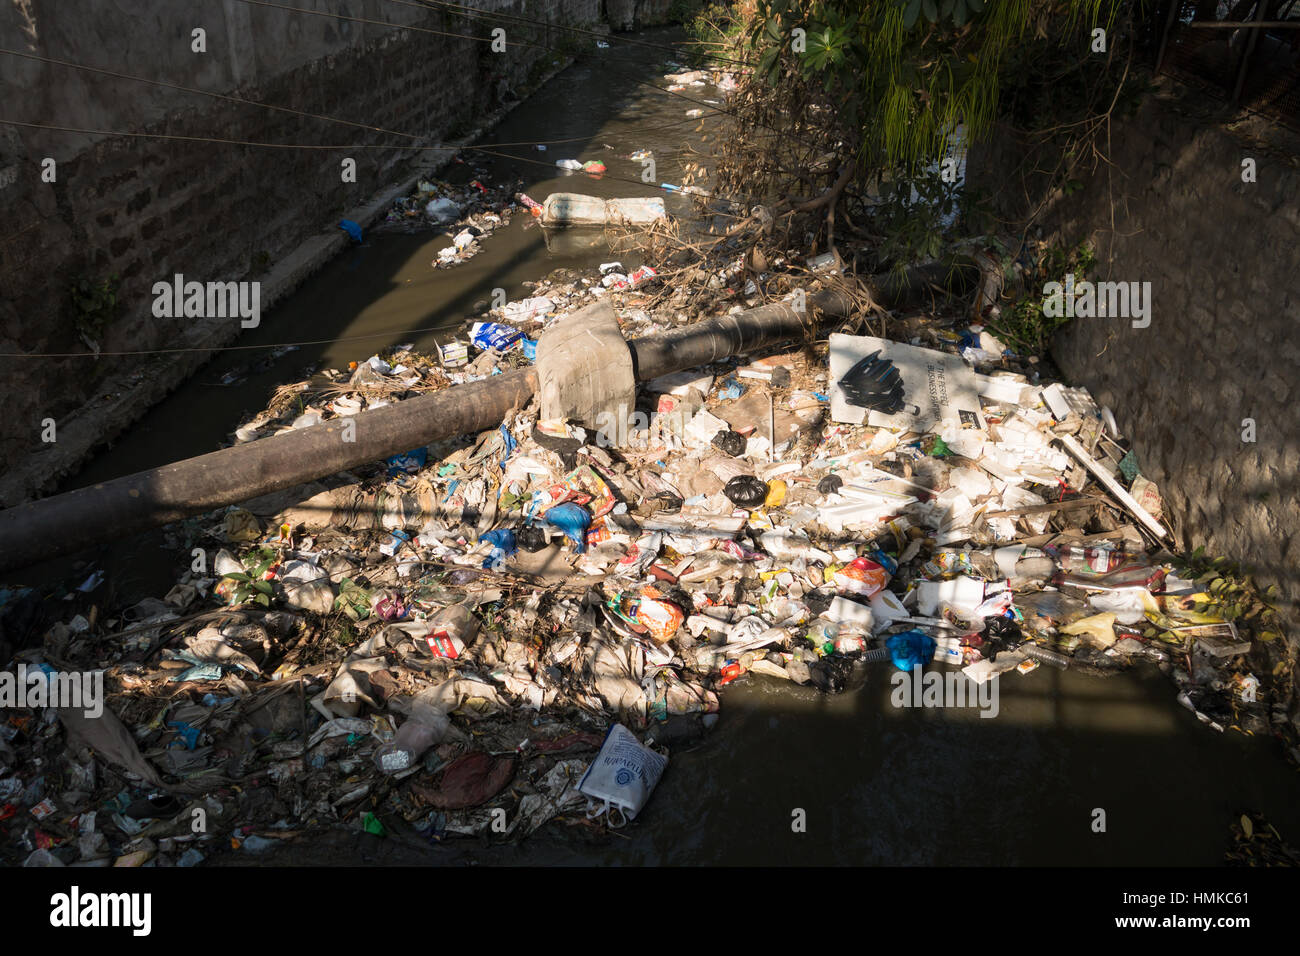 HYDERABAD, INDIA - FEBRUARY 03,2017  Sewage canal clogged by floating waste in Hyderabad,India - Stock Image